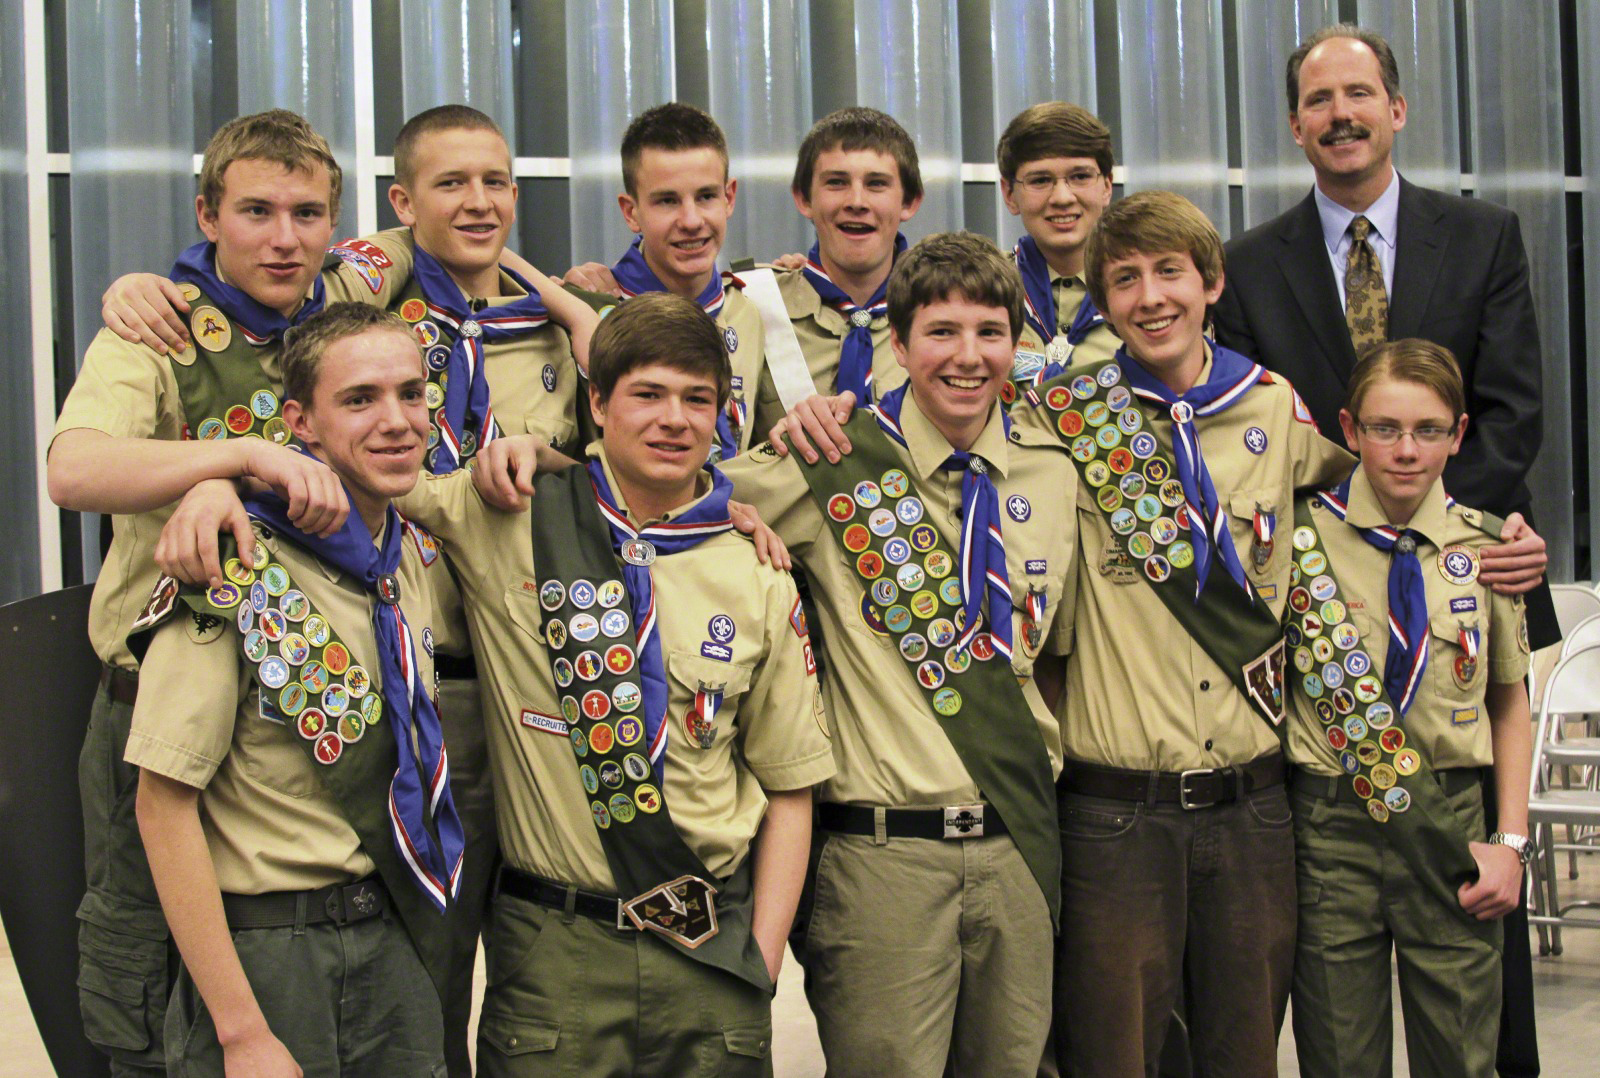 scouts boy lds church america mexico bsa scout scouting young mormon gay youth statement velvet steel resolution issues mormons standing